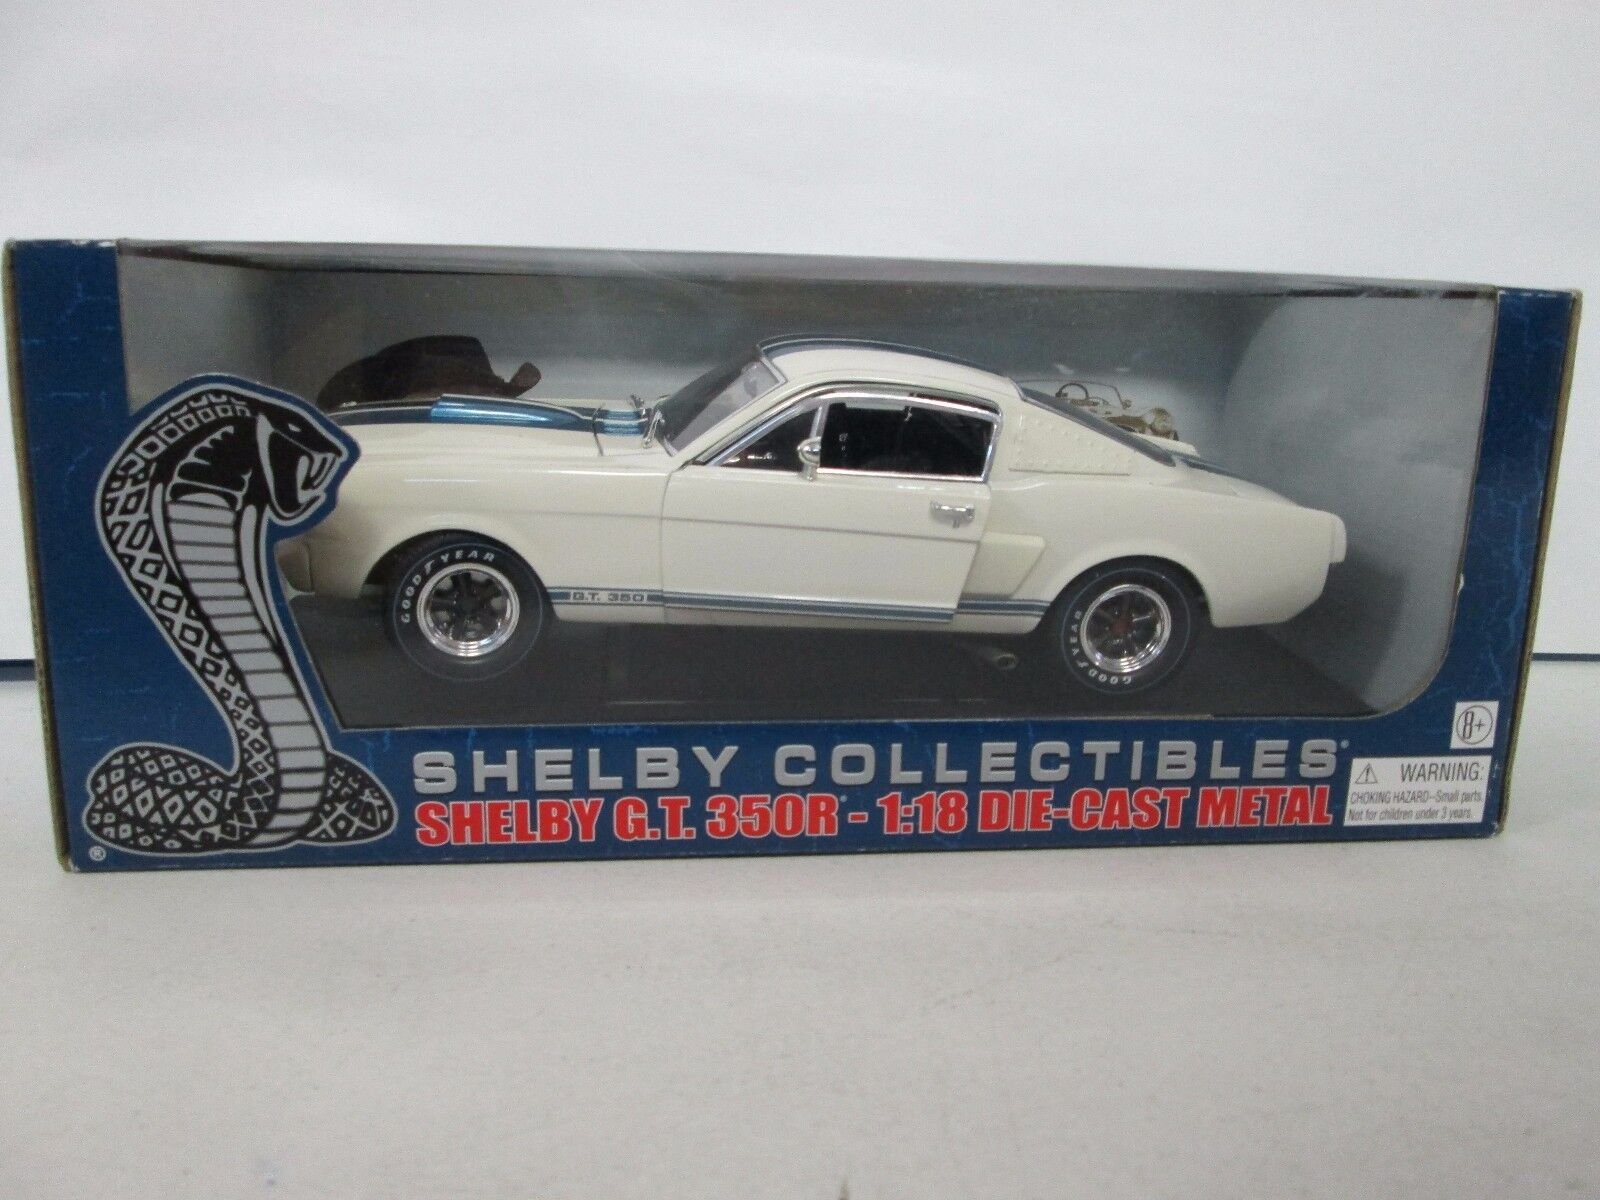 Shelby Collectibles Shelby G.T. 350R bianca 1 18